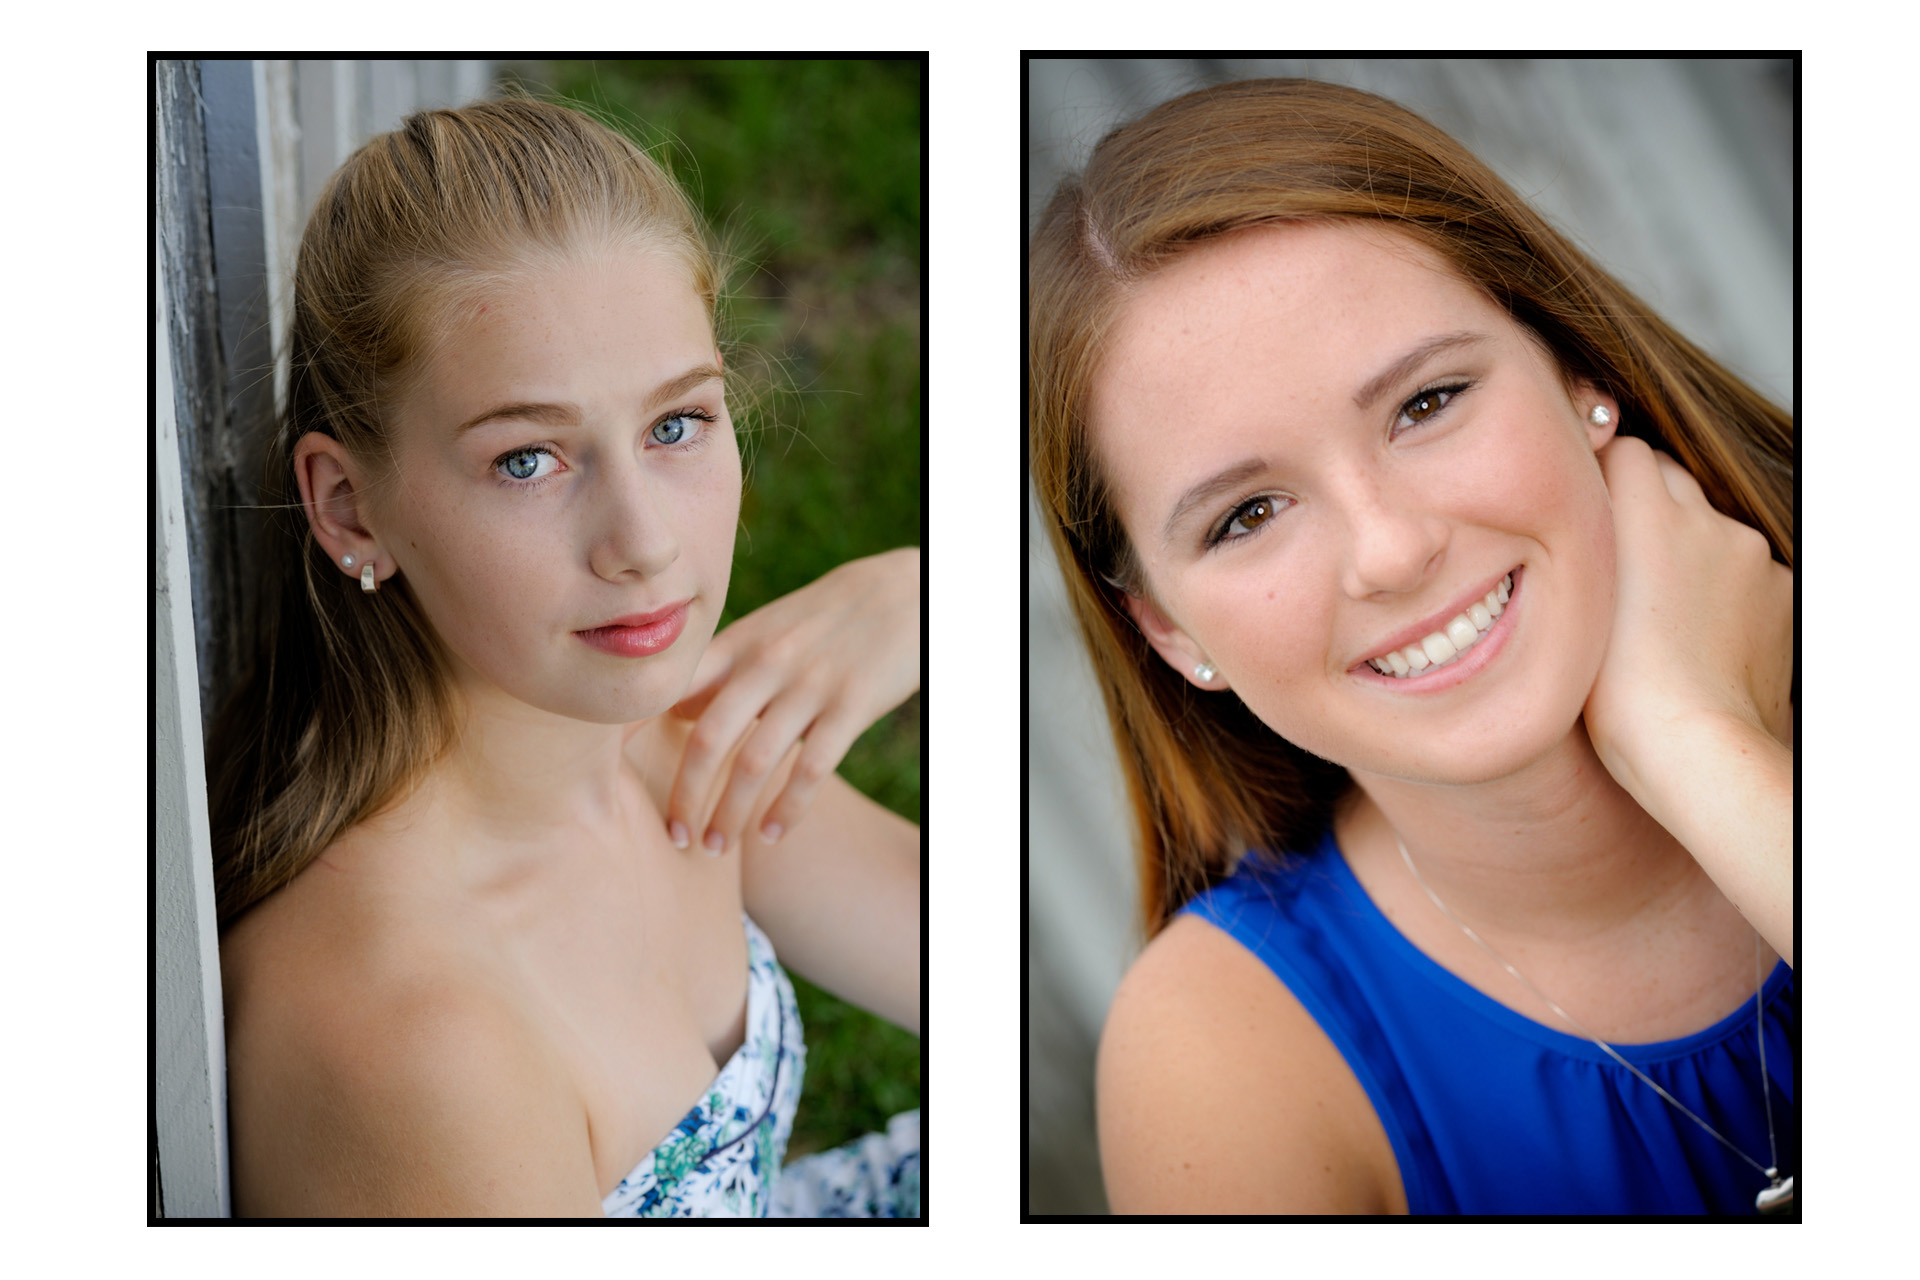 Troy, Michigan senior photographer's photo taken of two different high school seniors who are both gymnasts. I was able to get nice portraits of both girls before starting to take senior photos of them doing their sport in a unique location.